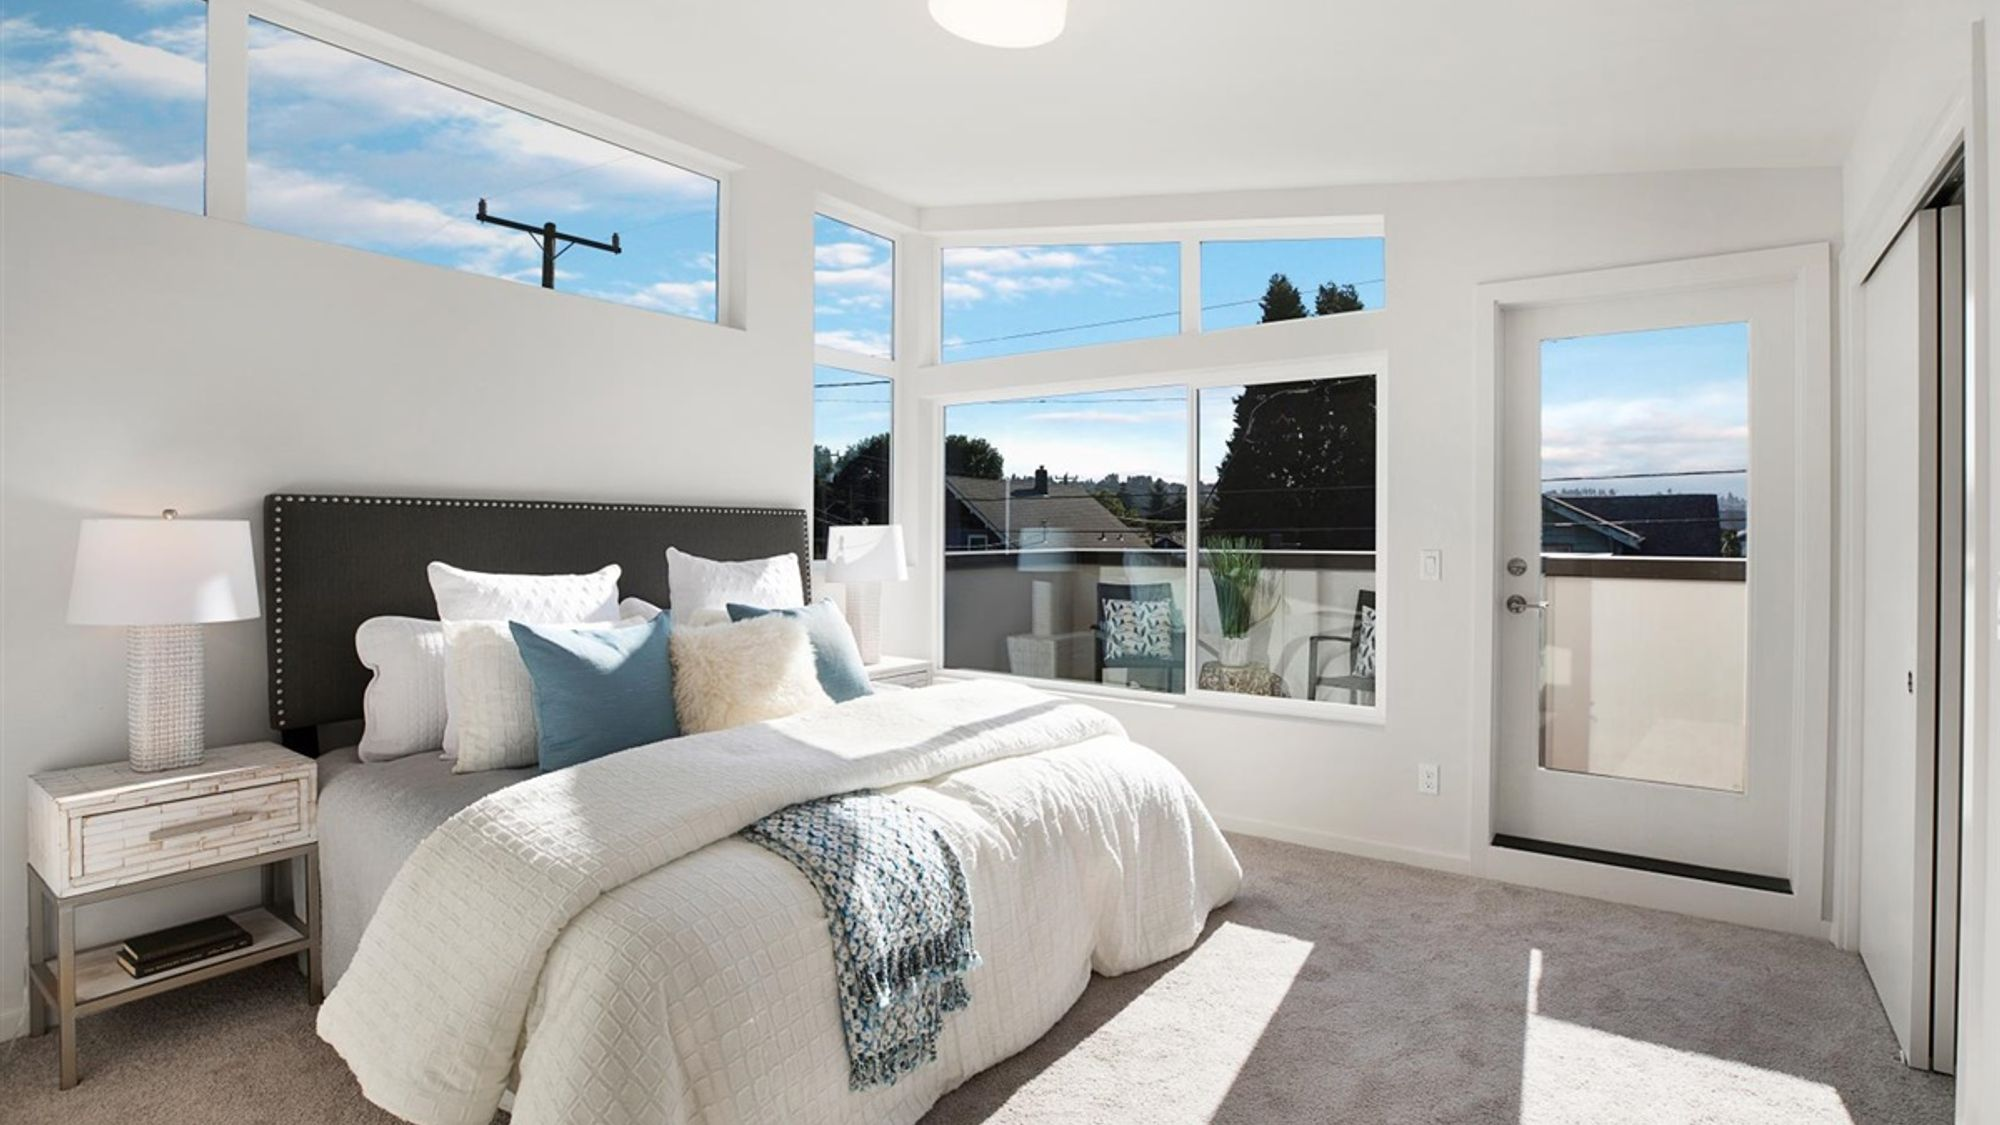 Master Bedroom and Deck of the Eero by Sage Homes Northwest